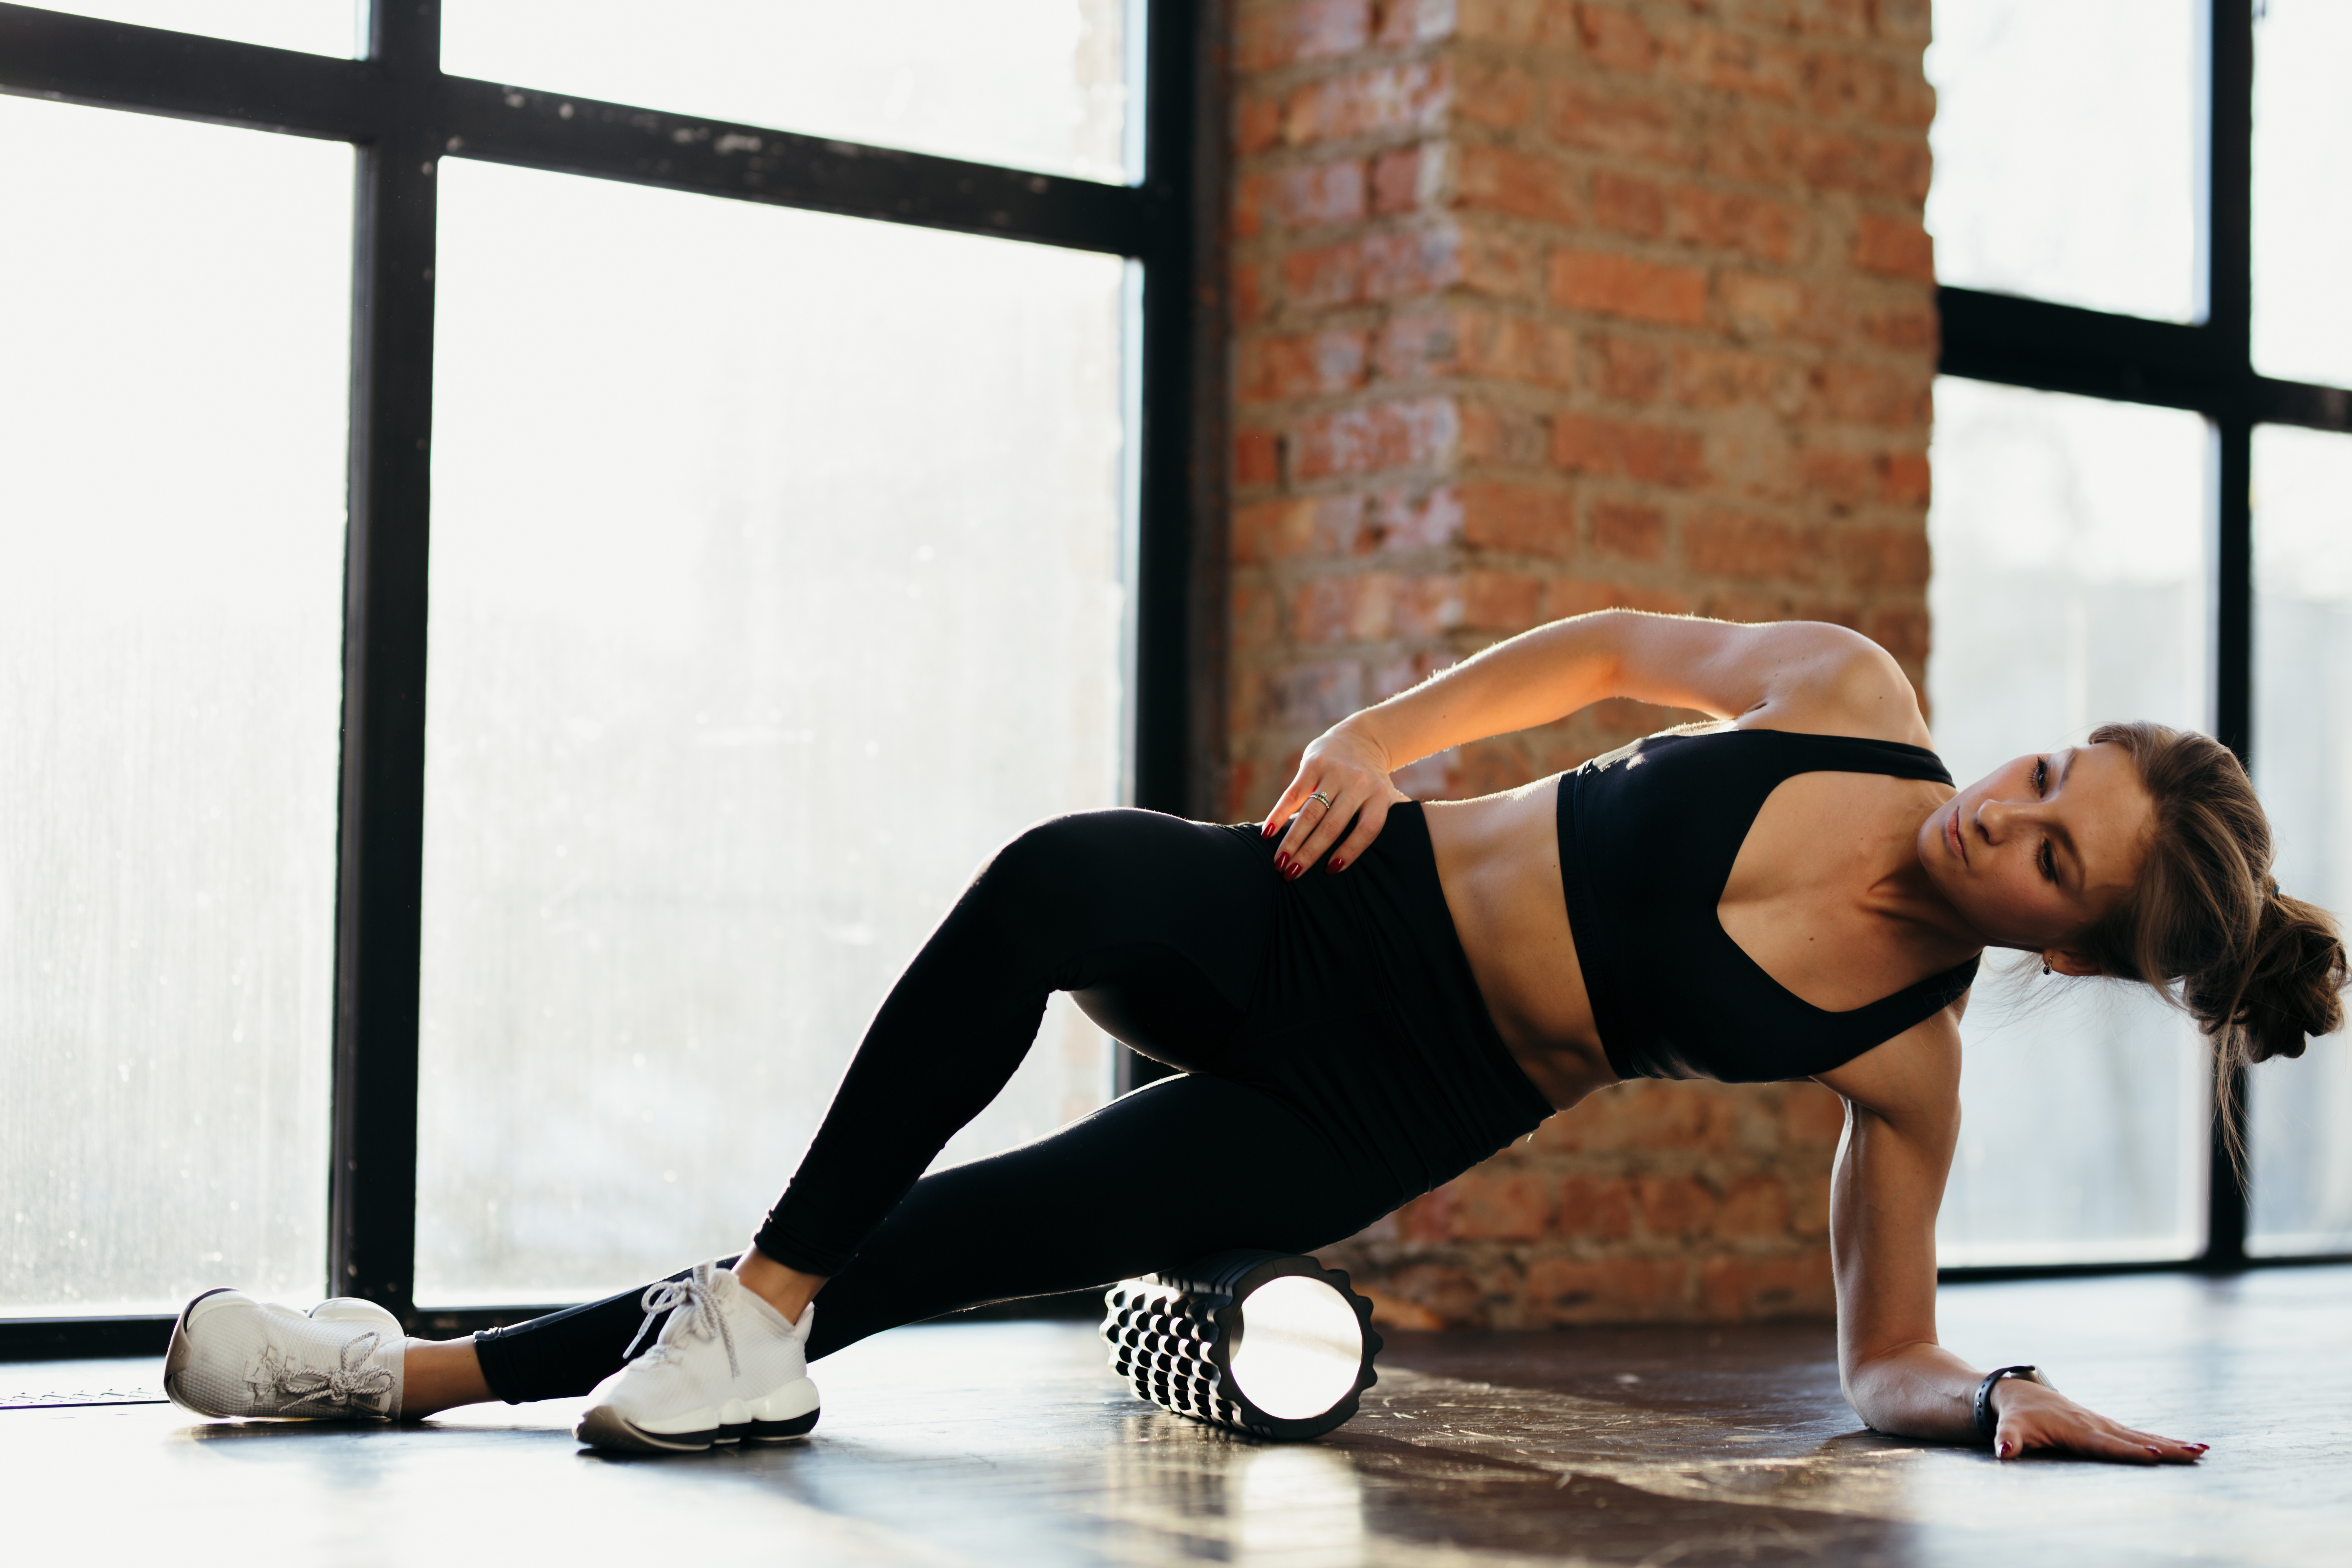 foam rolling to relieve sore muscles and DOMS